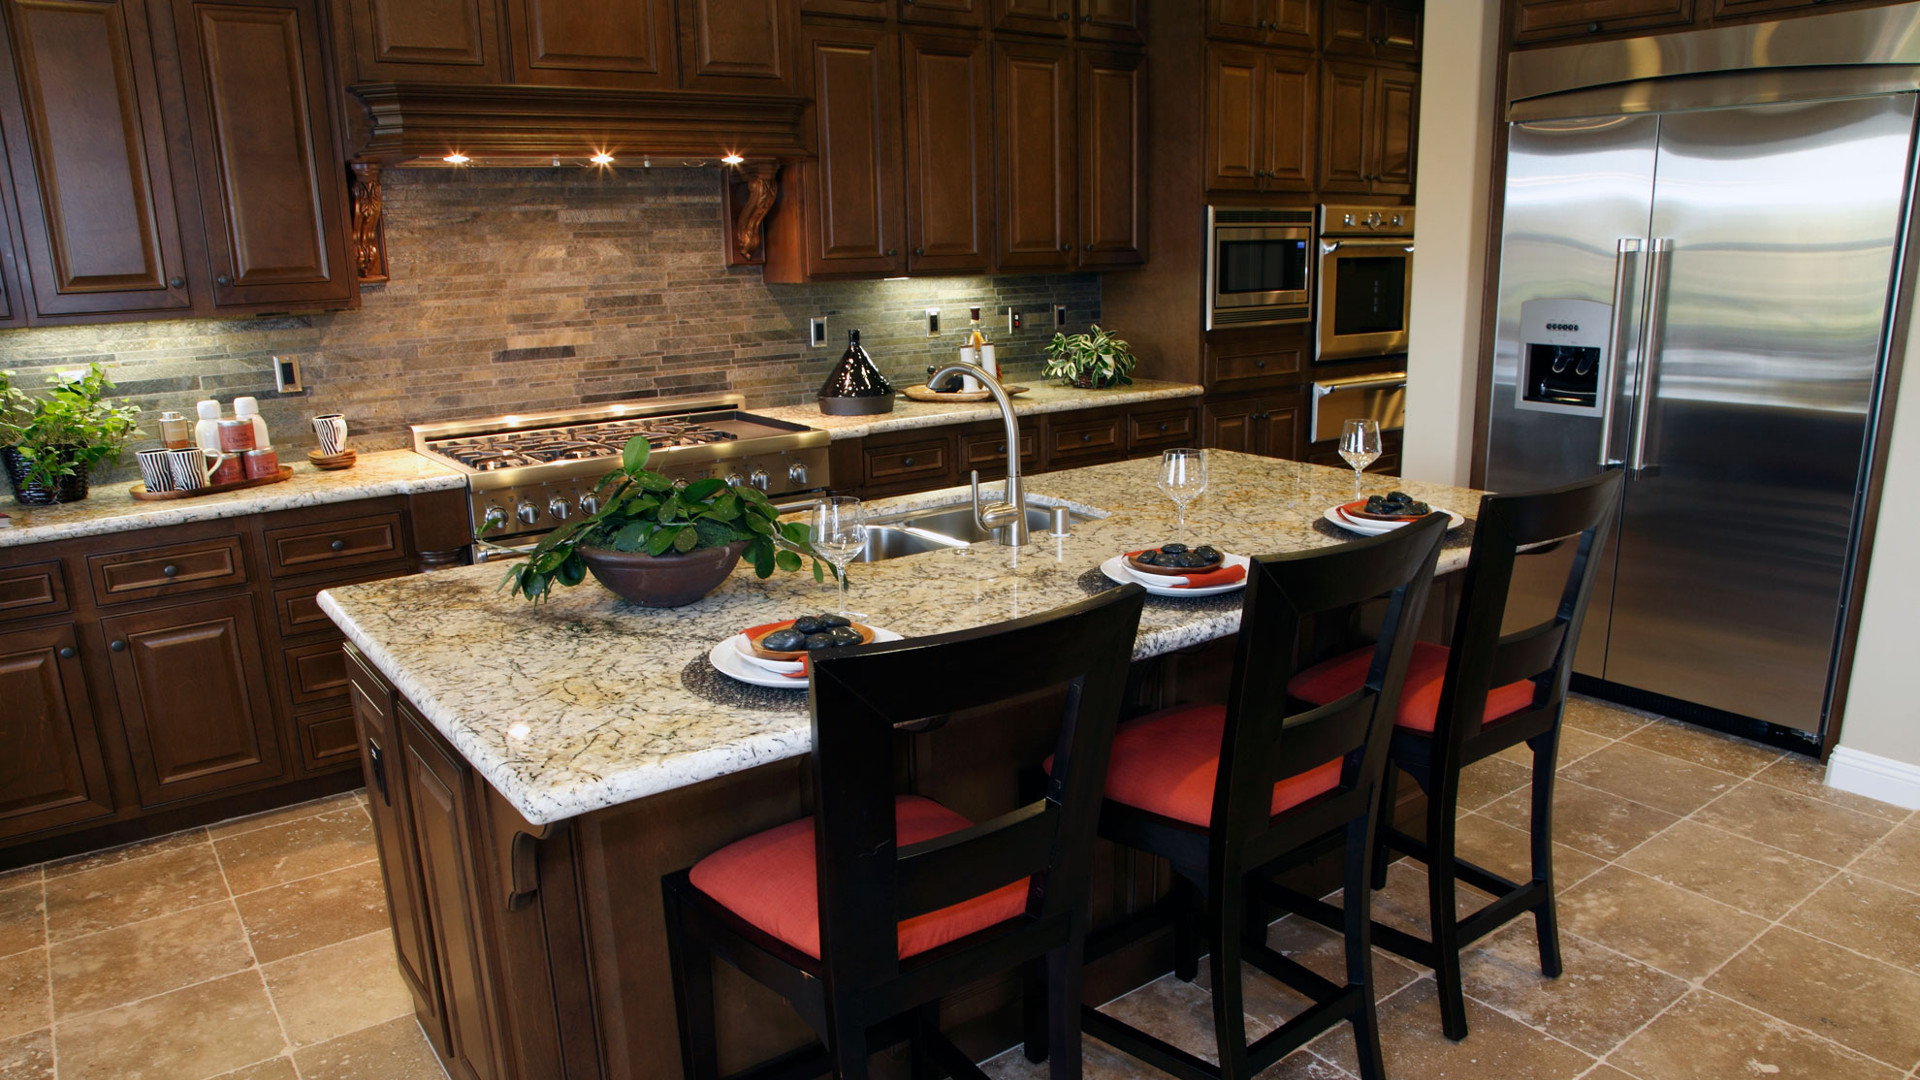 New Braunfels Remodeling: Kitchen Remodeling, Bathroom Remodeling ...